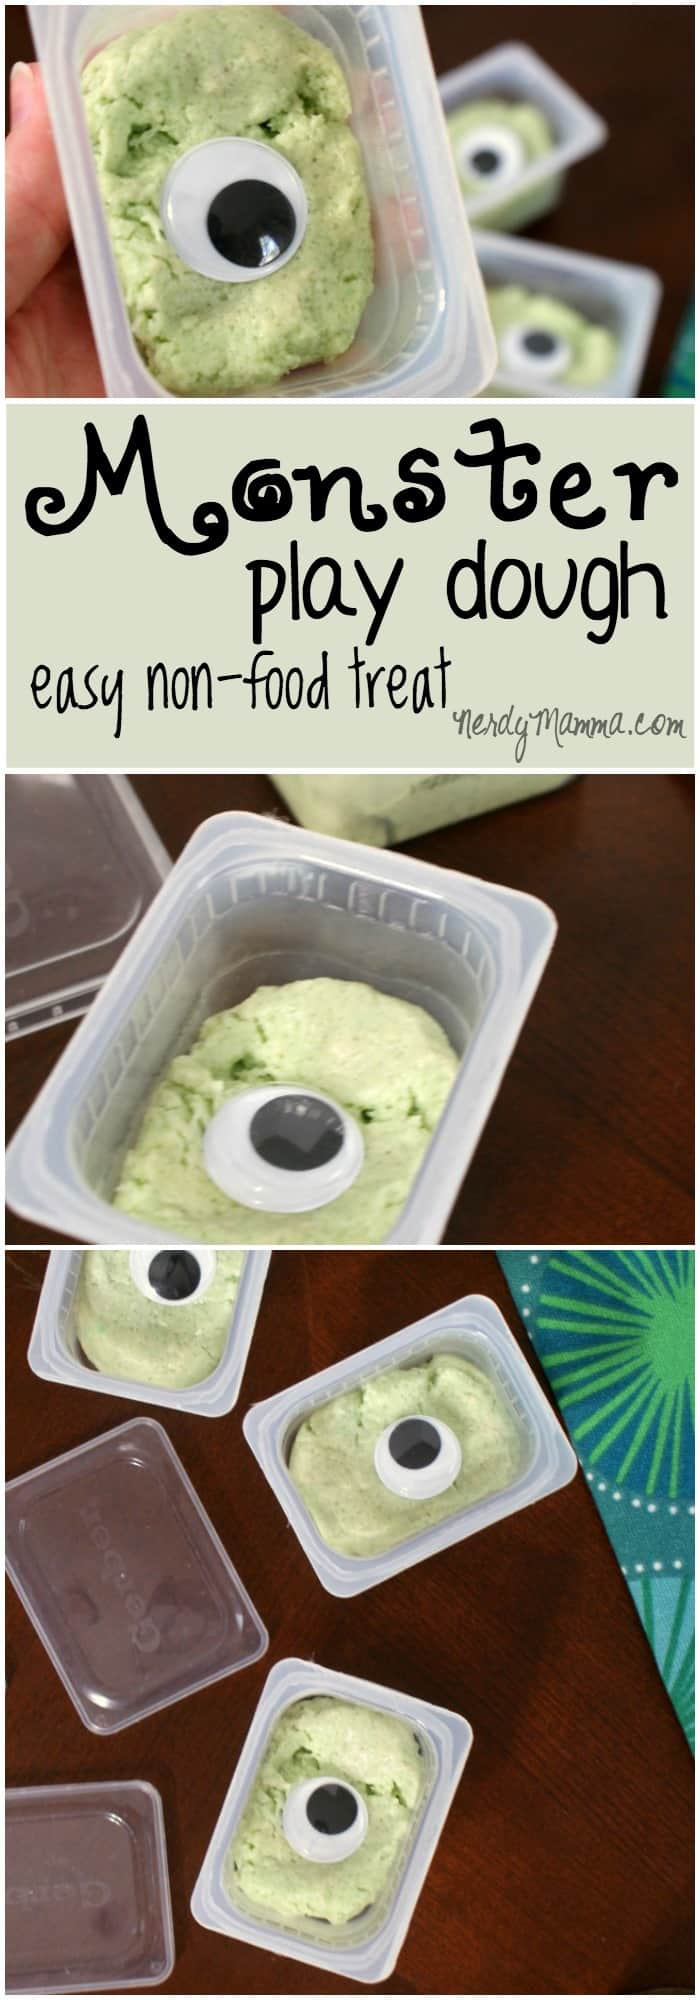 I love this treat for Halloween--that's not food! Such a fast, cute idea! Like a mini-invitation to play.